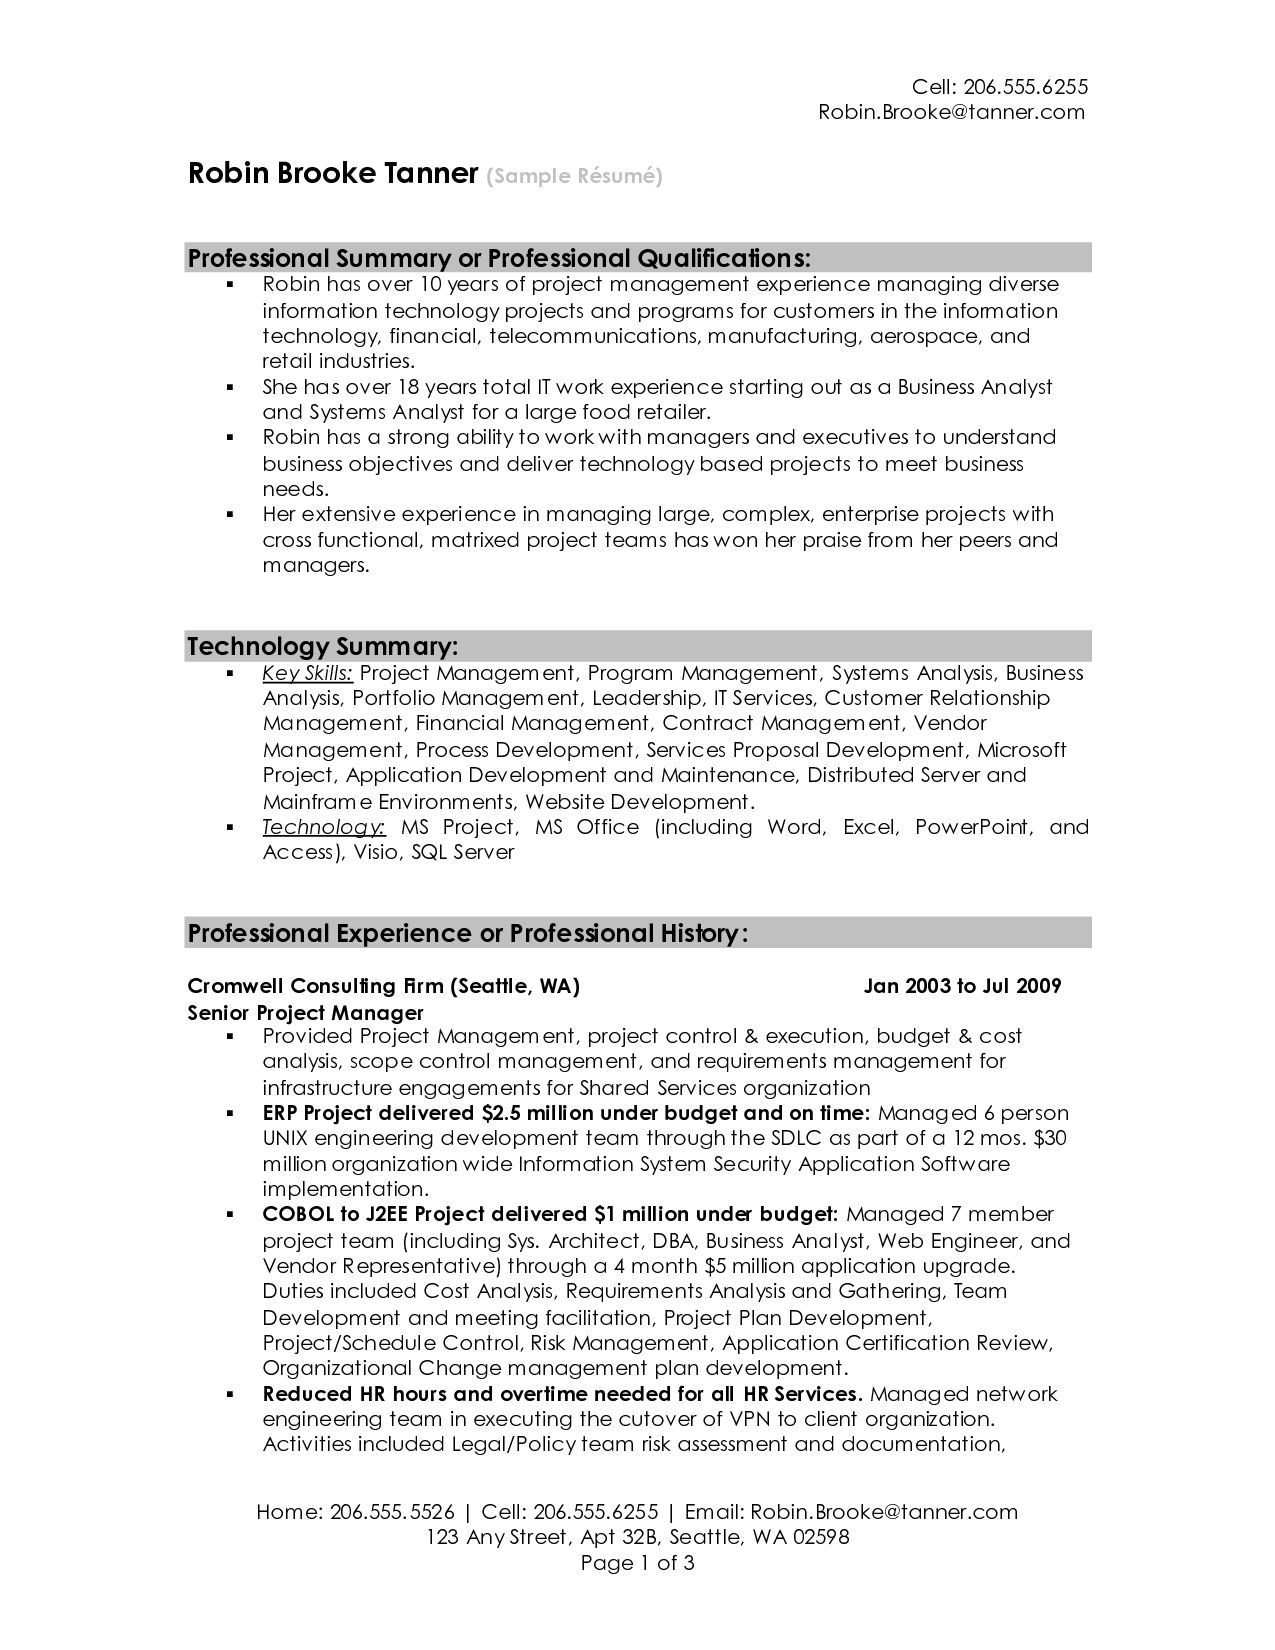 professional summary resume sample for statement examples